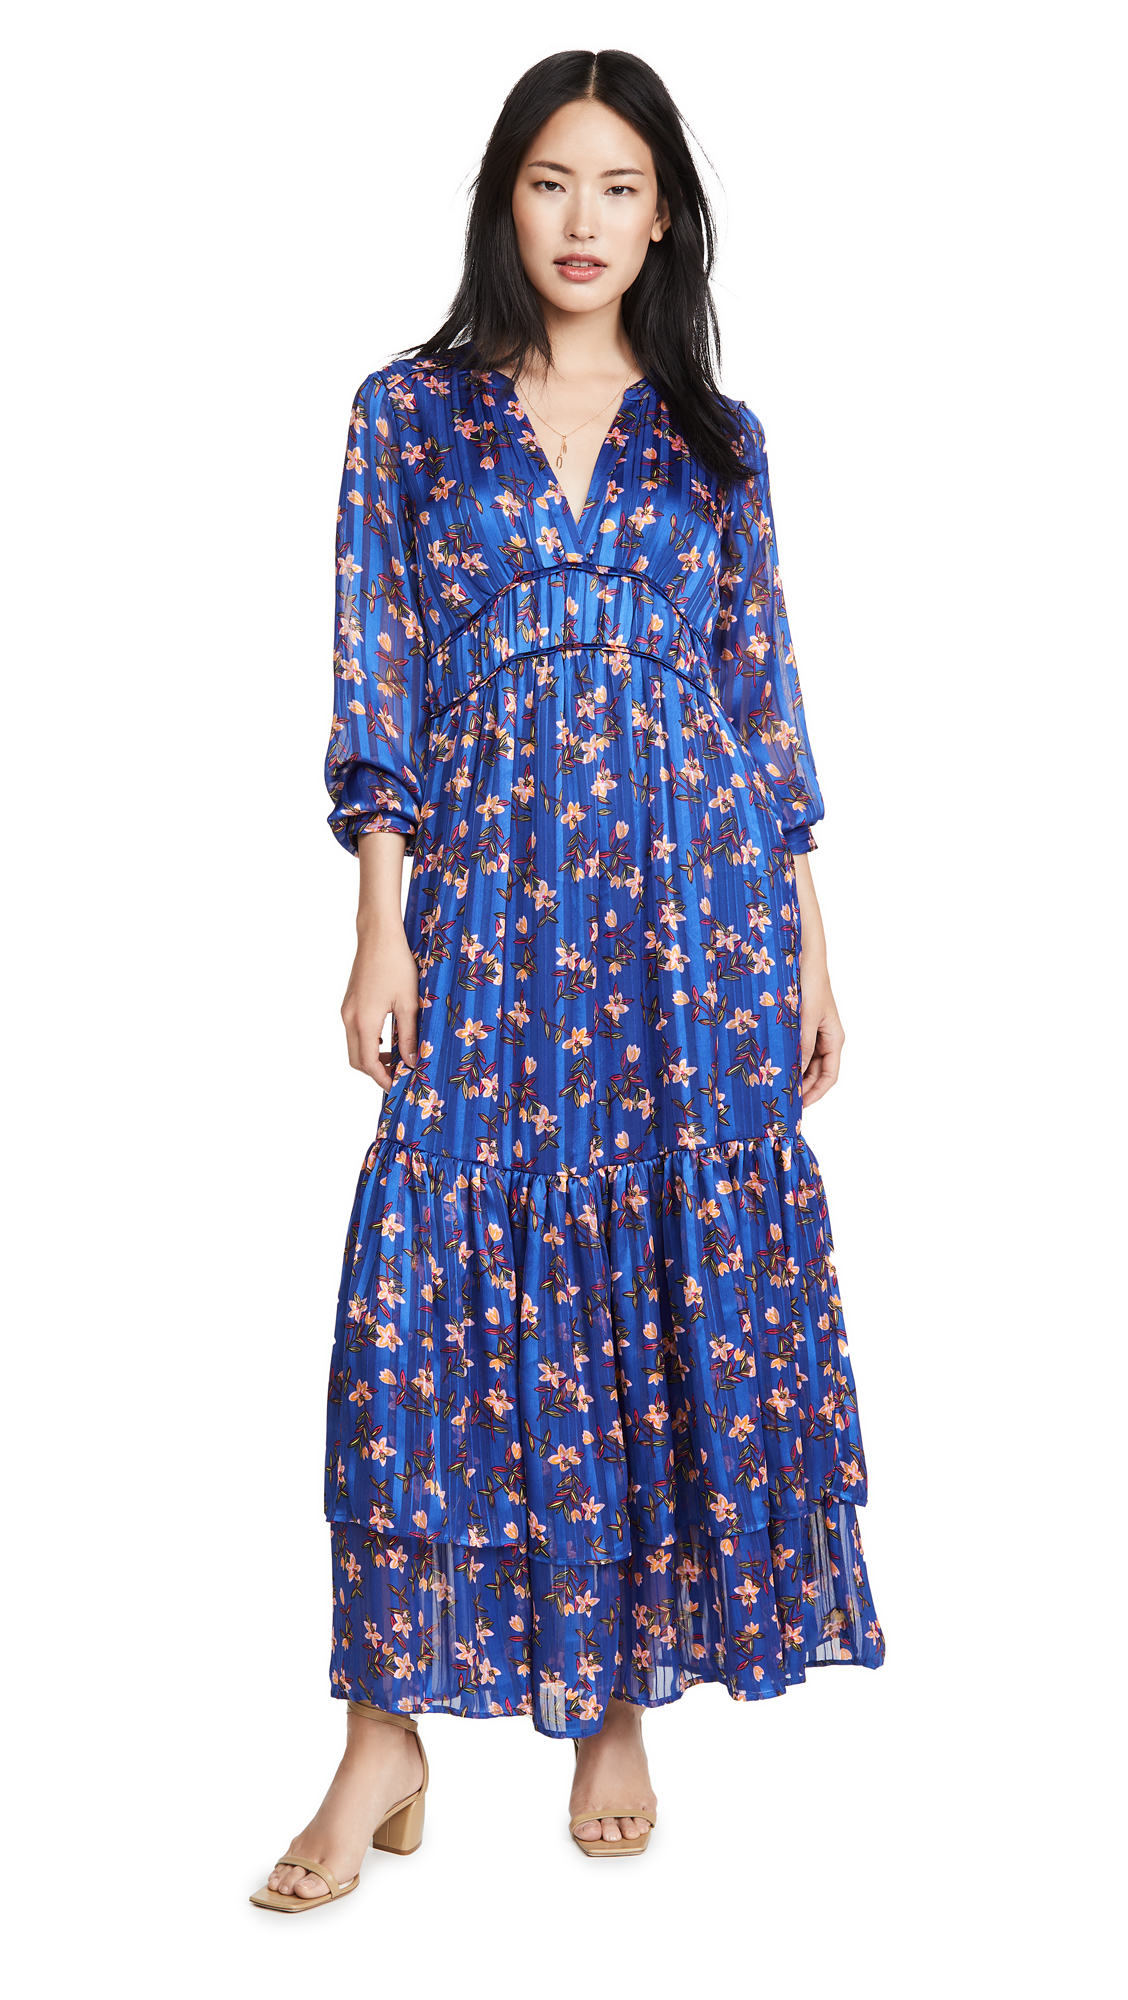 Photo of Scotch & Soda/Maison Scotch Midi Dress - shop Scotch & Soda/Maison Scotch Clothing, Dresses online